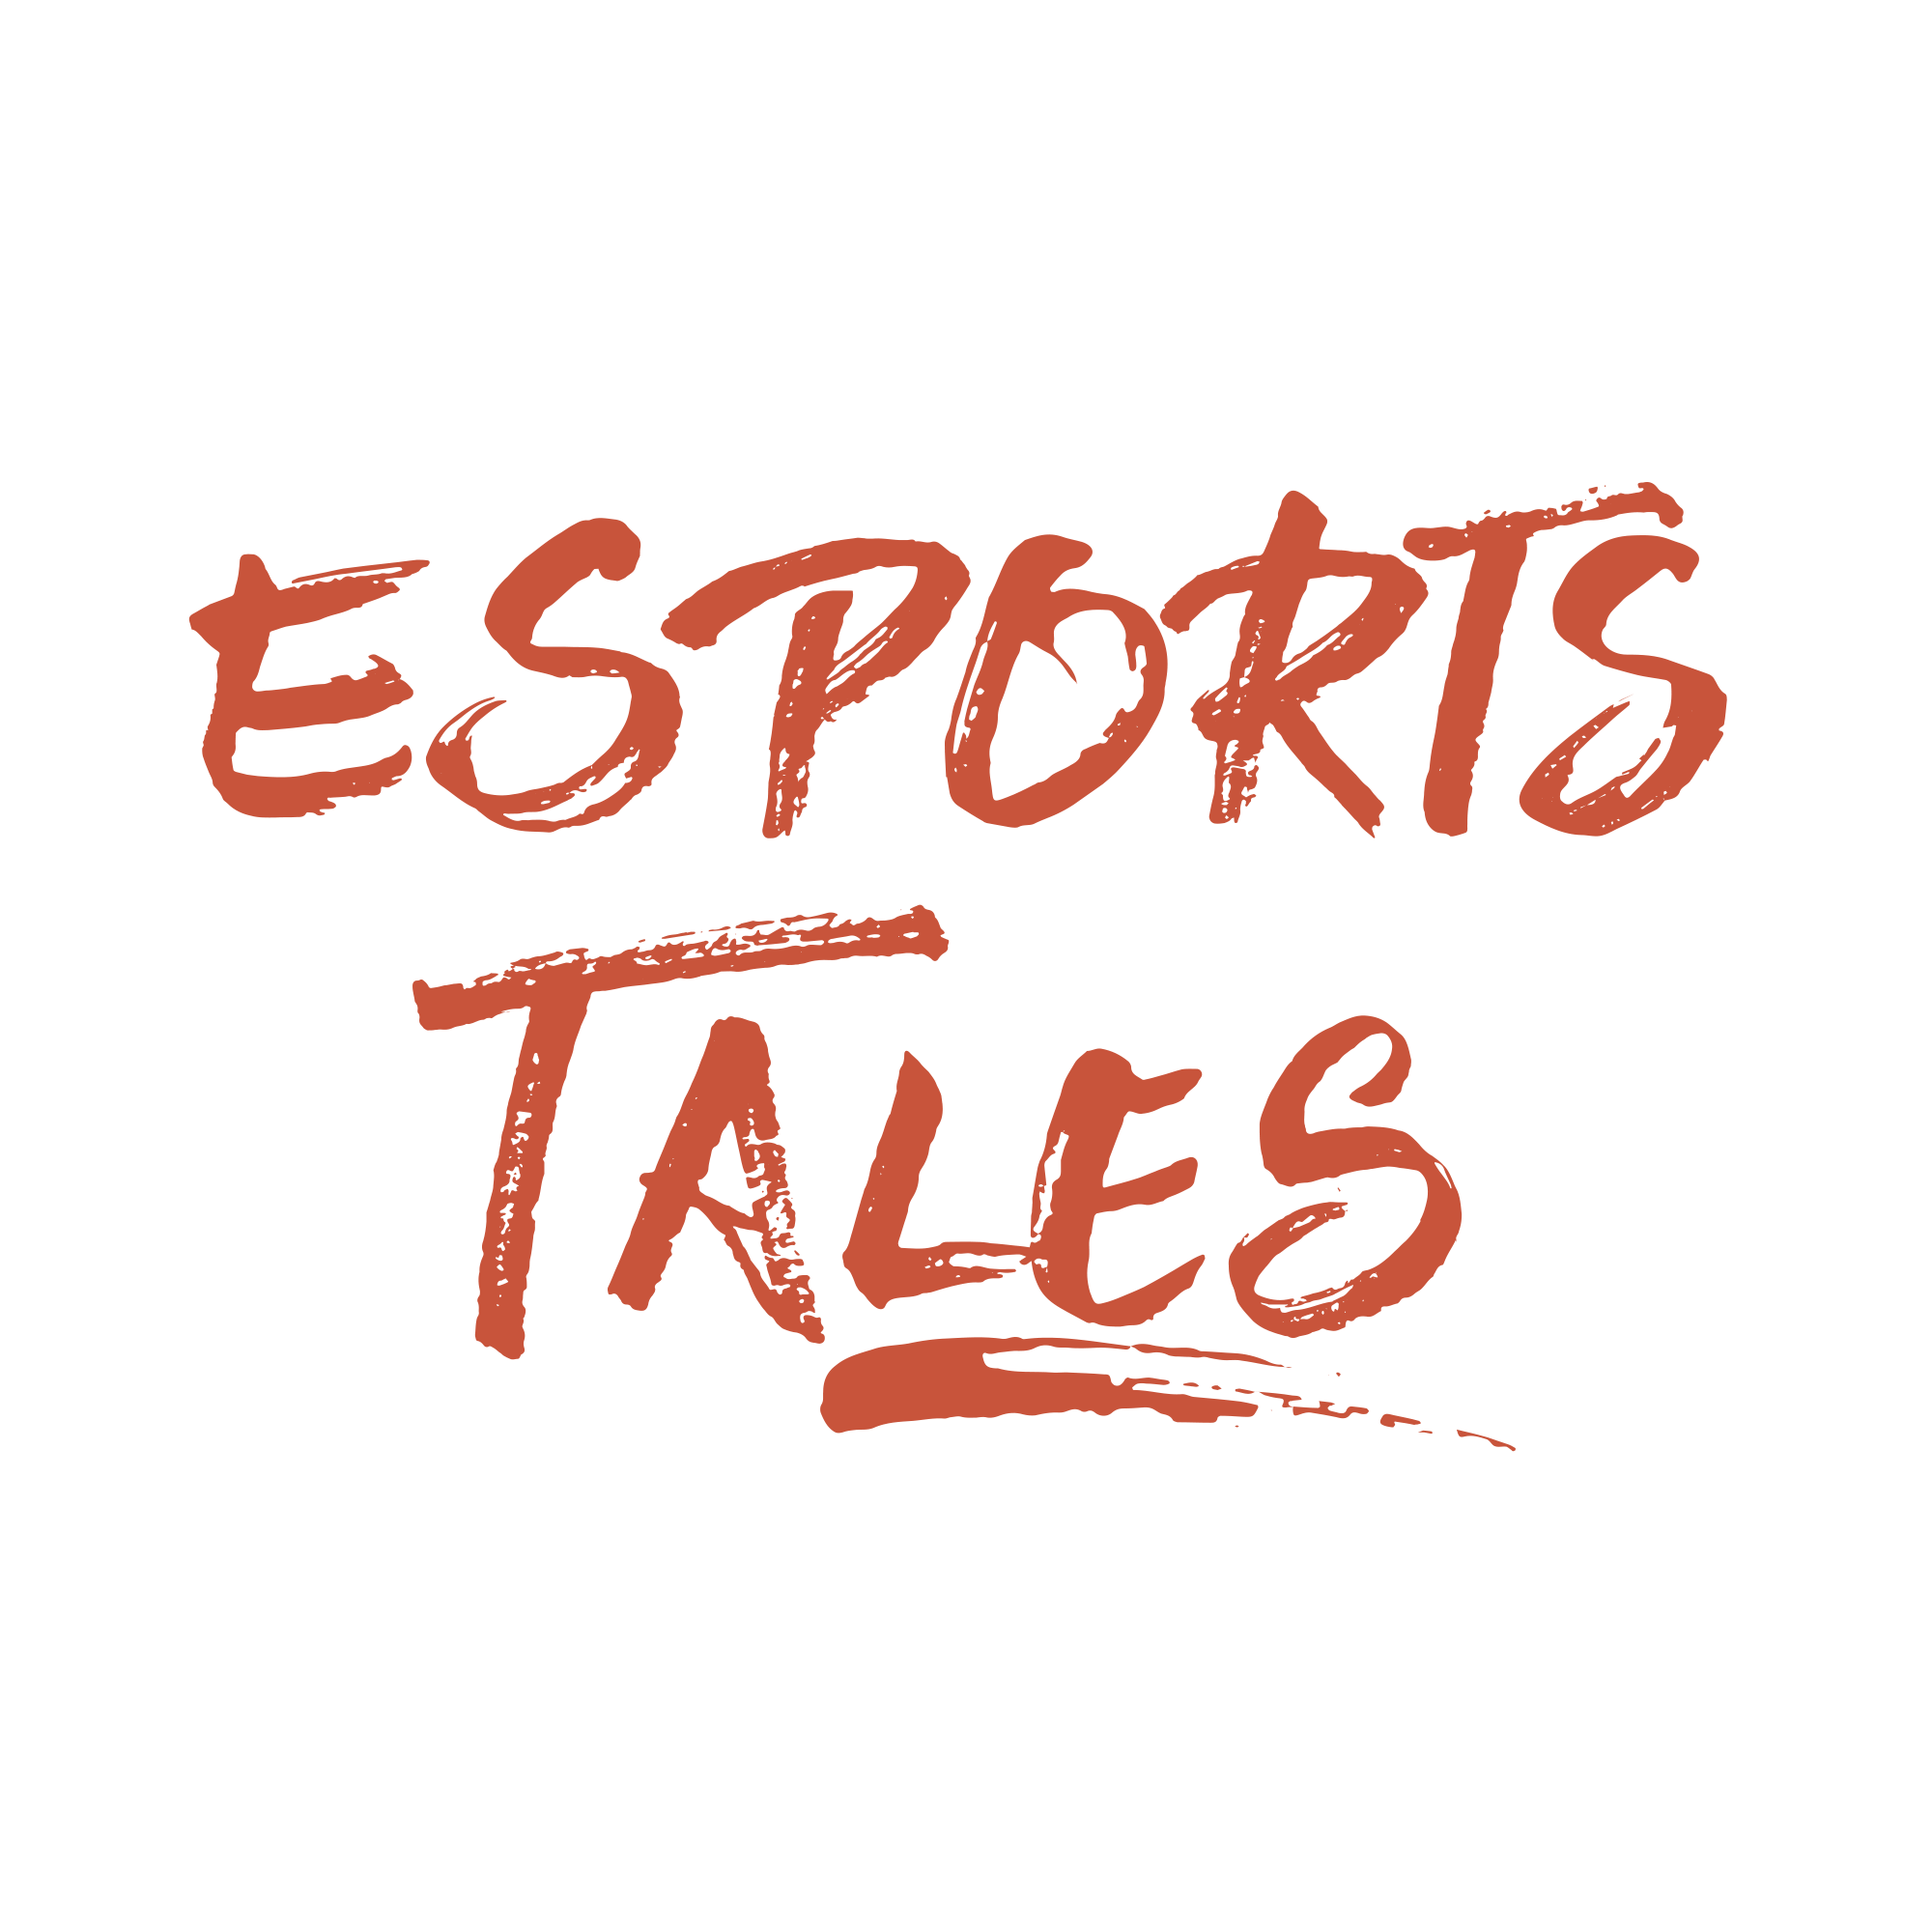 League of Legends ranked Season 9 end date | Esports Tales